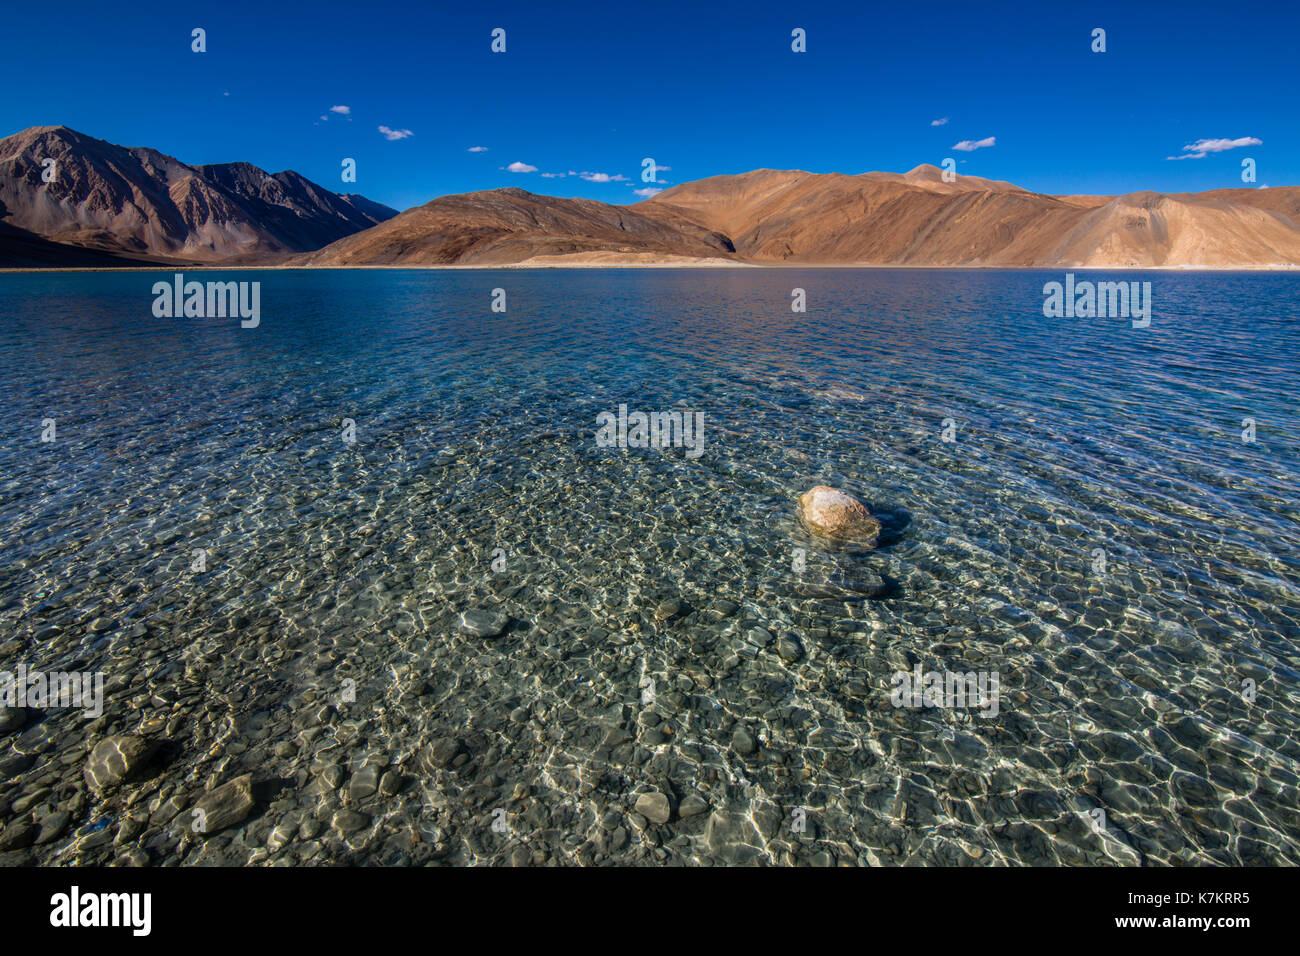 The Beauty of Pangong Lake - an endorheic lake in the Himalayas situated at a height of about 4,350 m (14,270 ft) Stock Photo